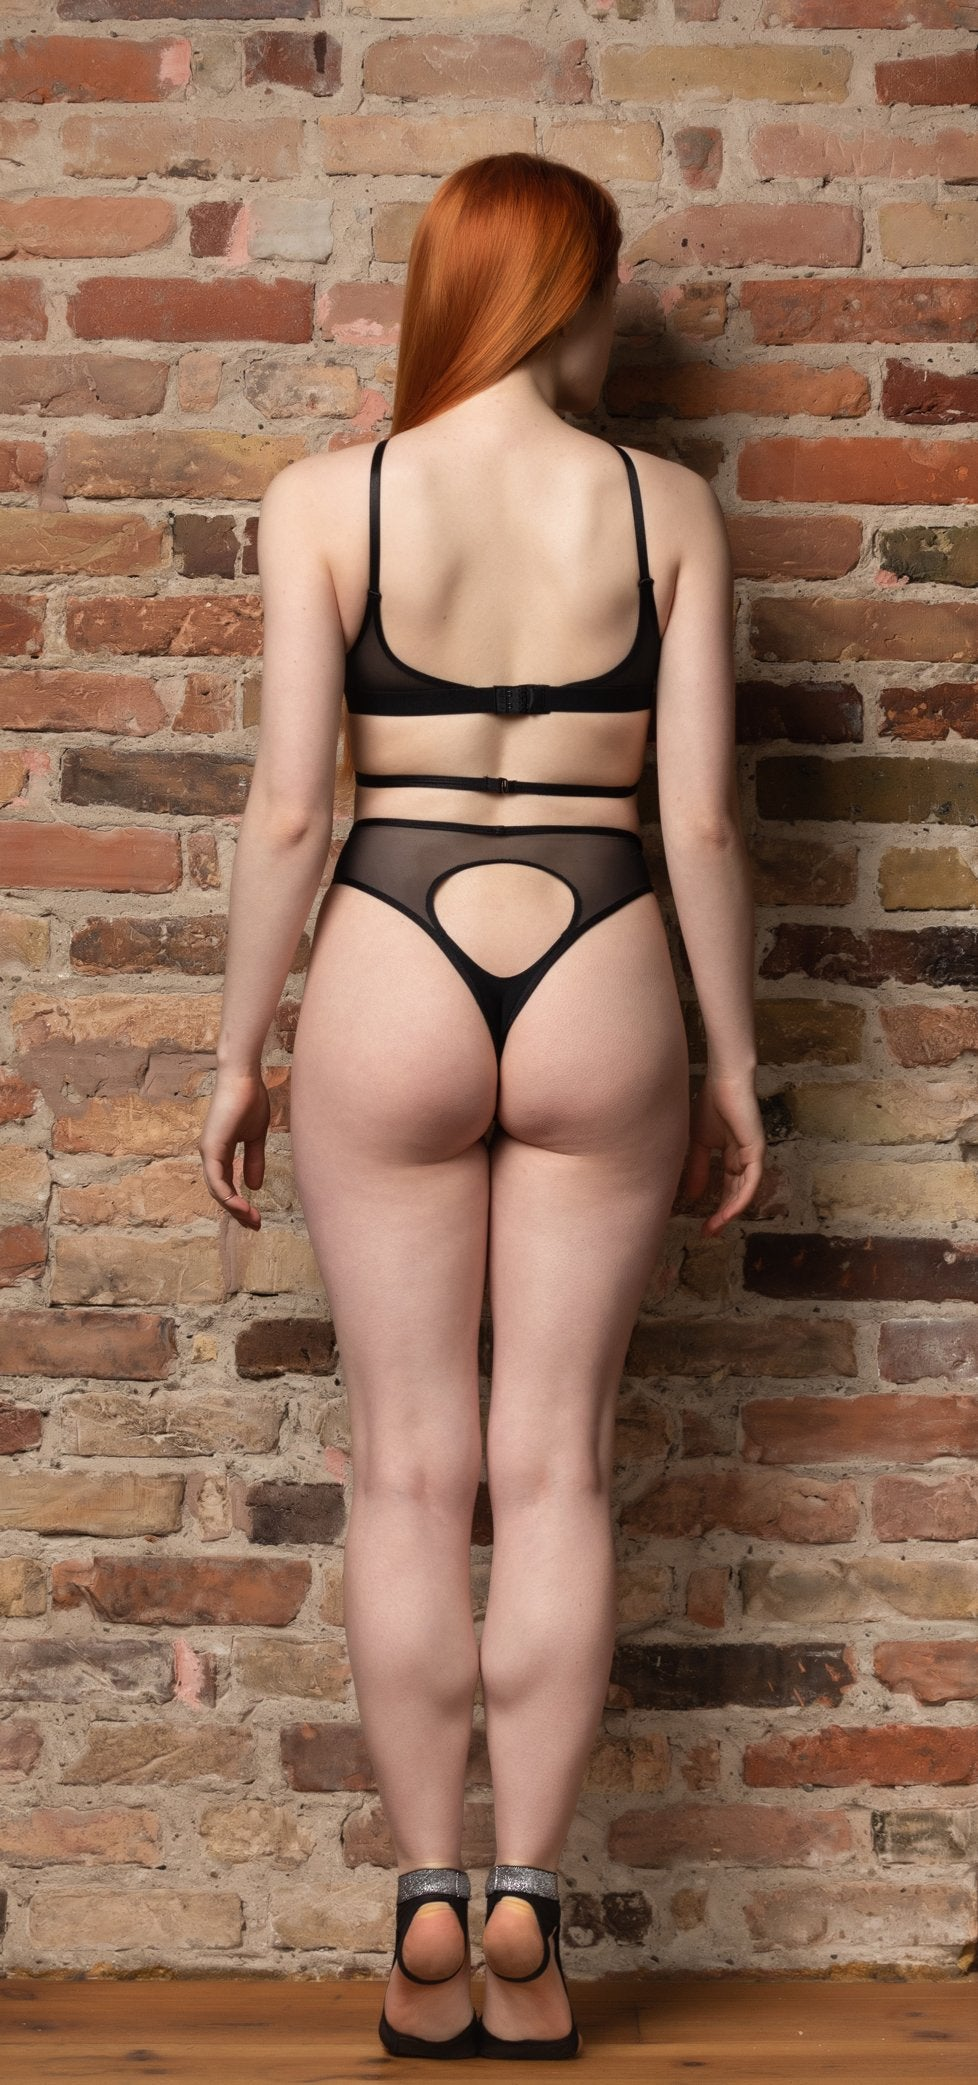 thong as lingerie or partywear